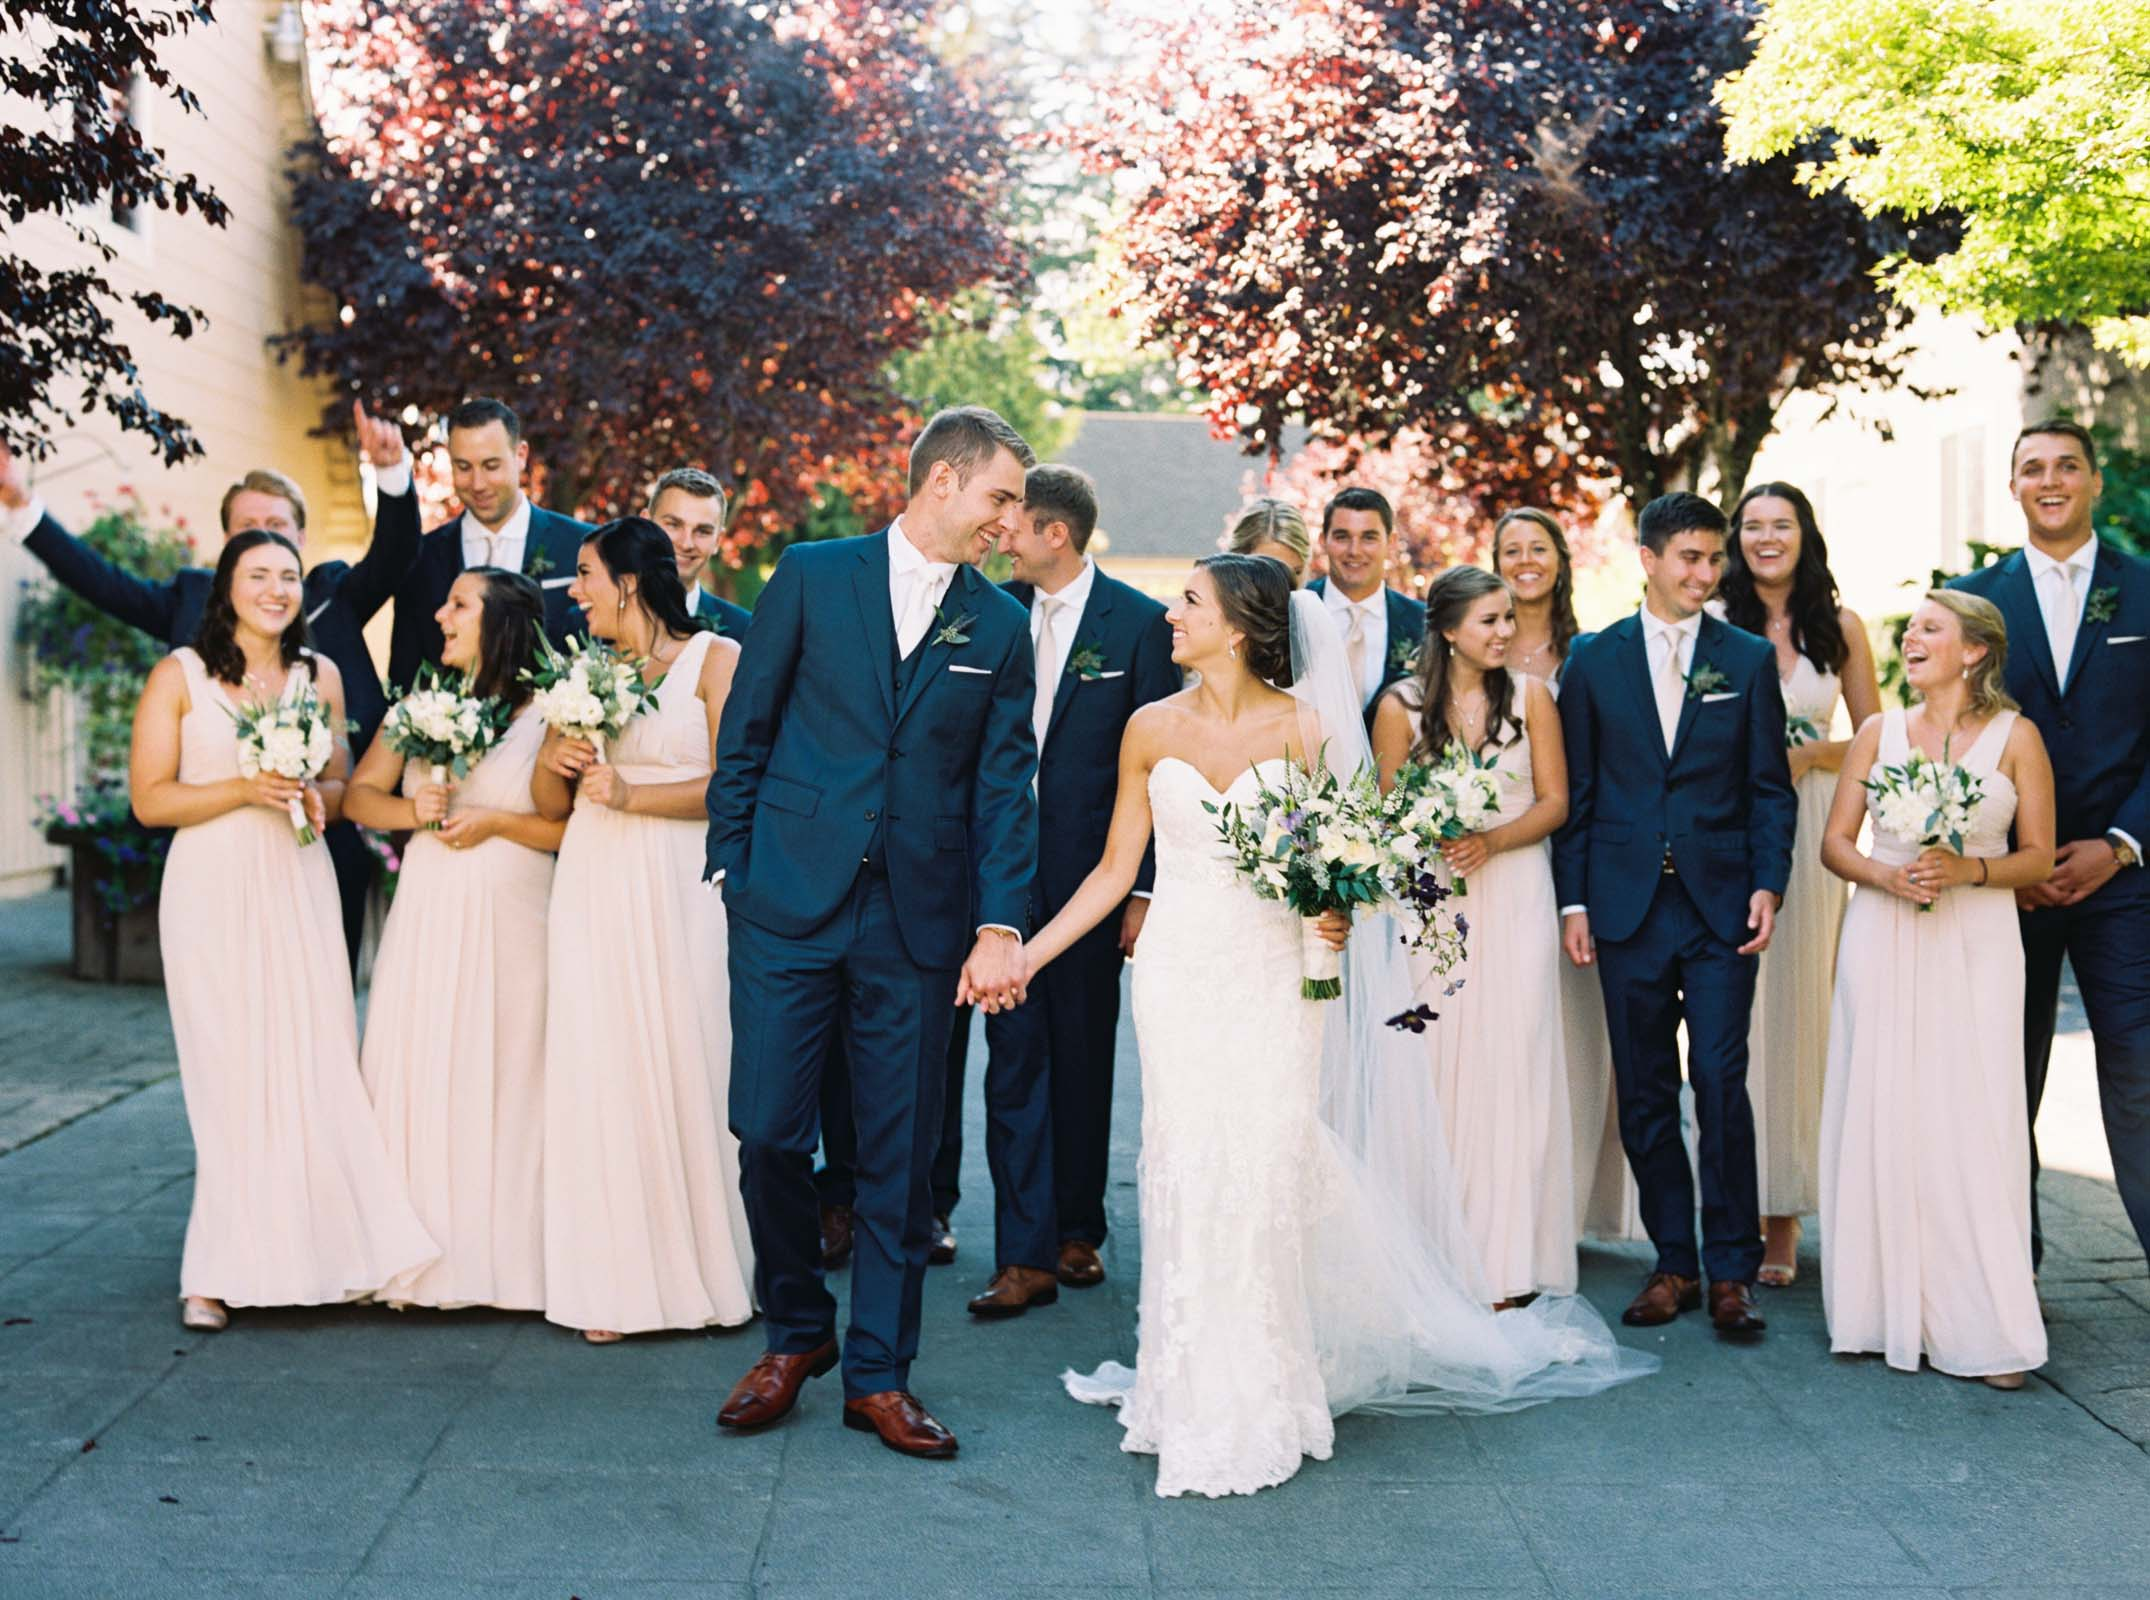 Joyful bridal party photos at a Lord Hill Farms wedding in Seattle